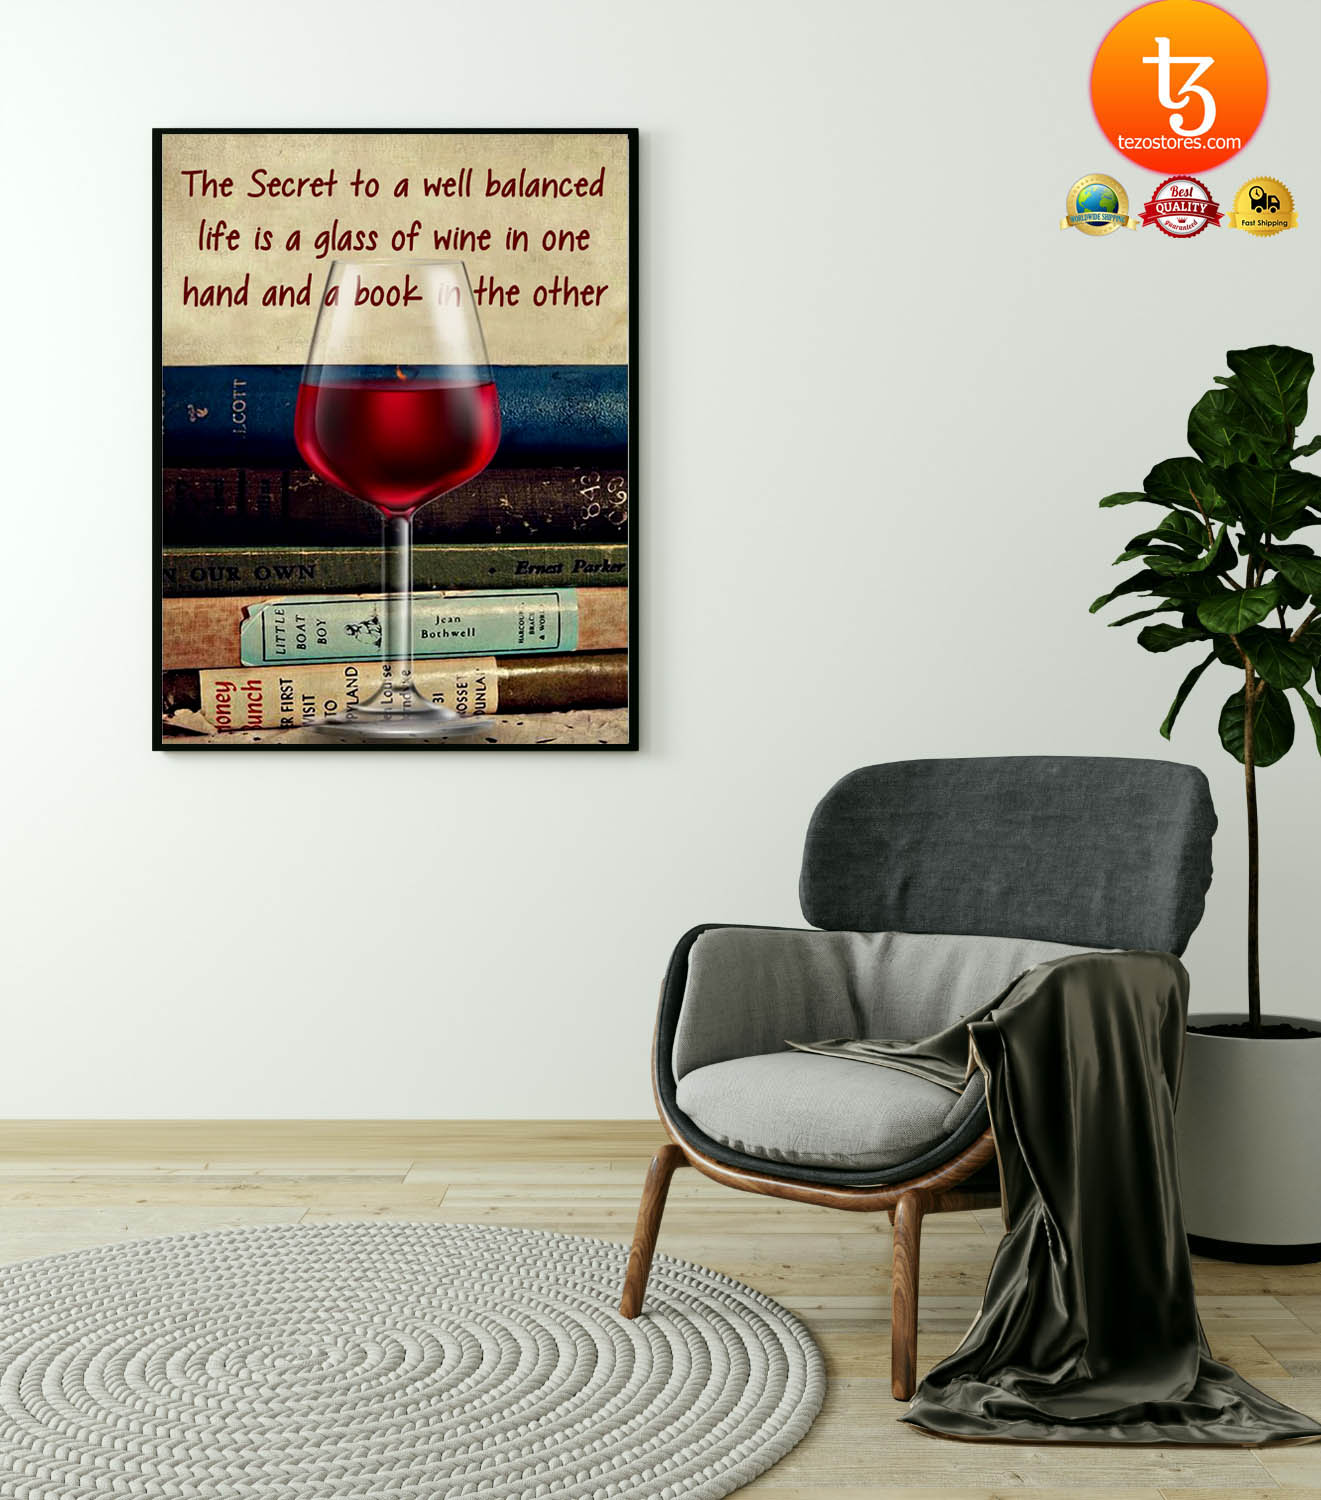 The secret to a weel balanced life is a glass of wine poster